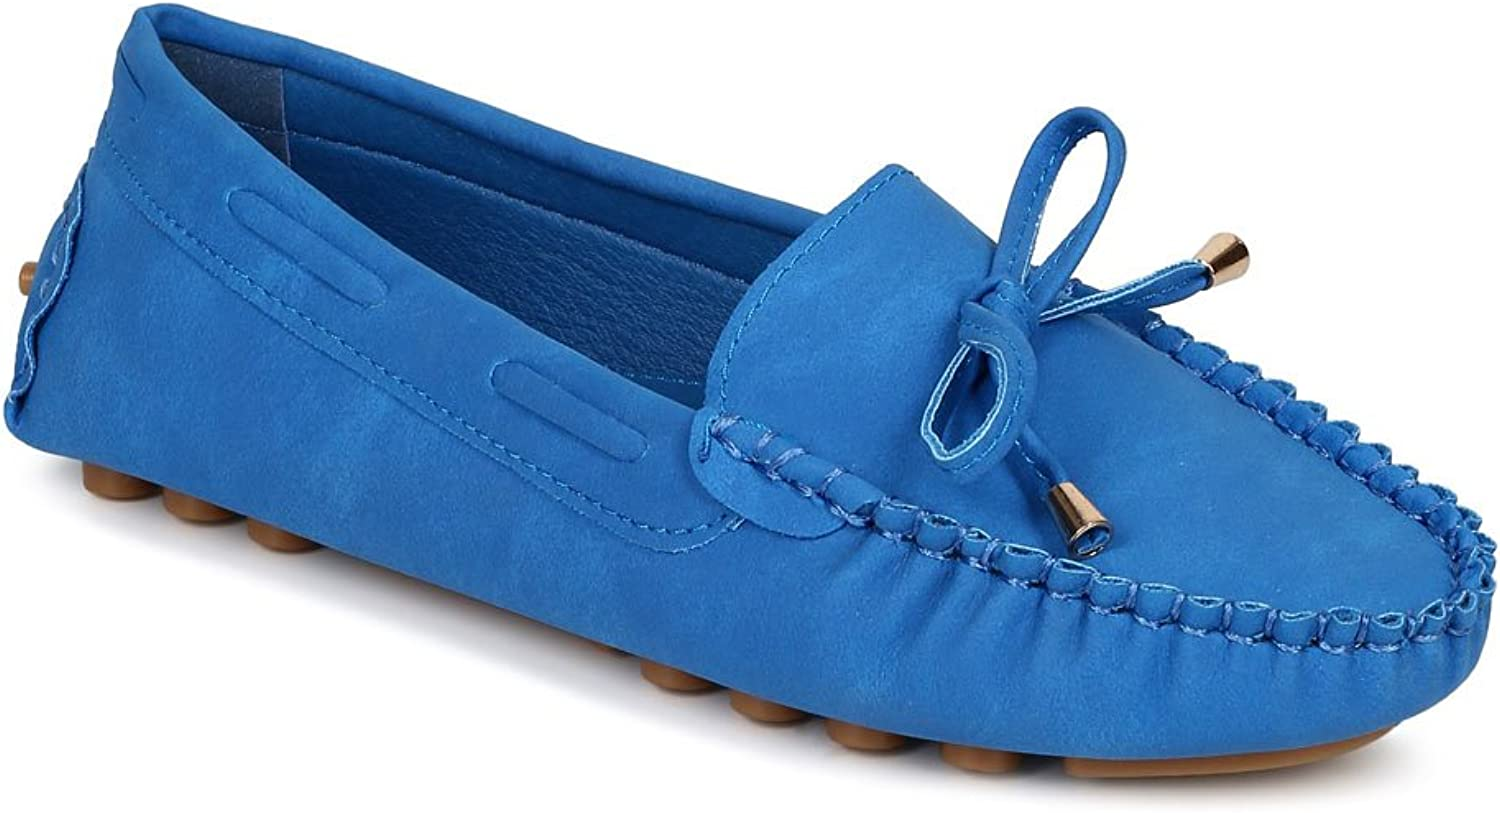 Misbehave Women Leatherette Bow Tassel Slip On Moccasin Flat CF74 - bluee Leatherette